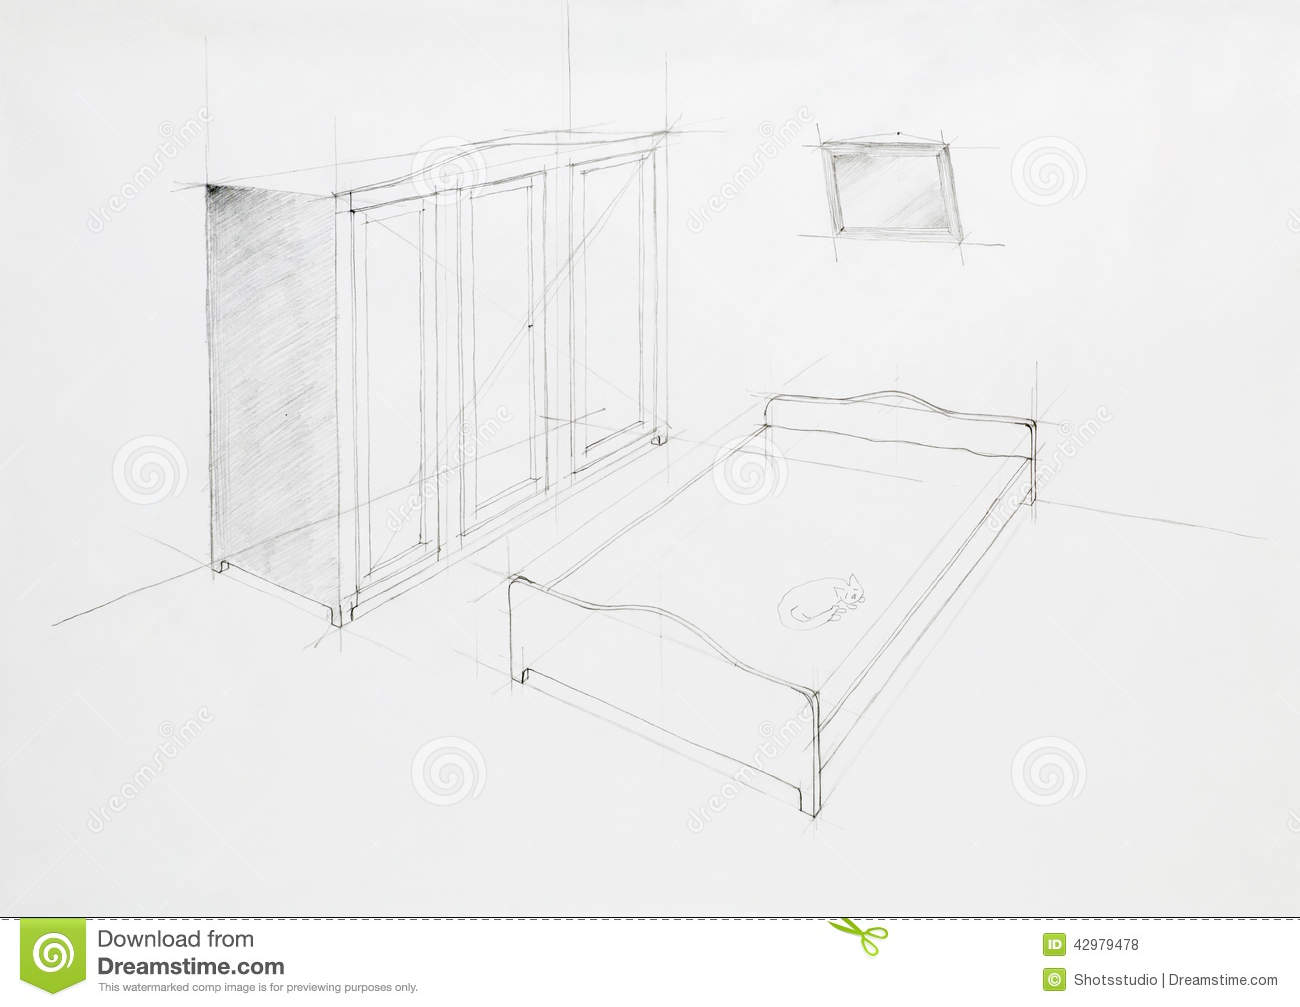 Architectural Perspective Of Bedroom Stock Illustration - Image: 42979478